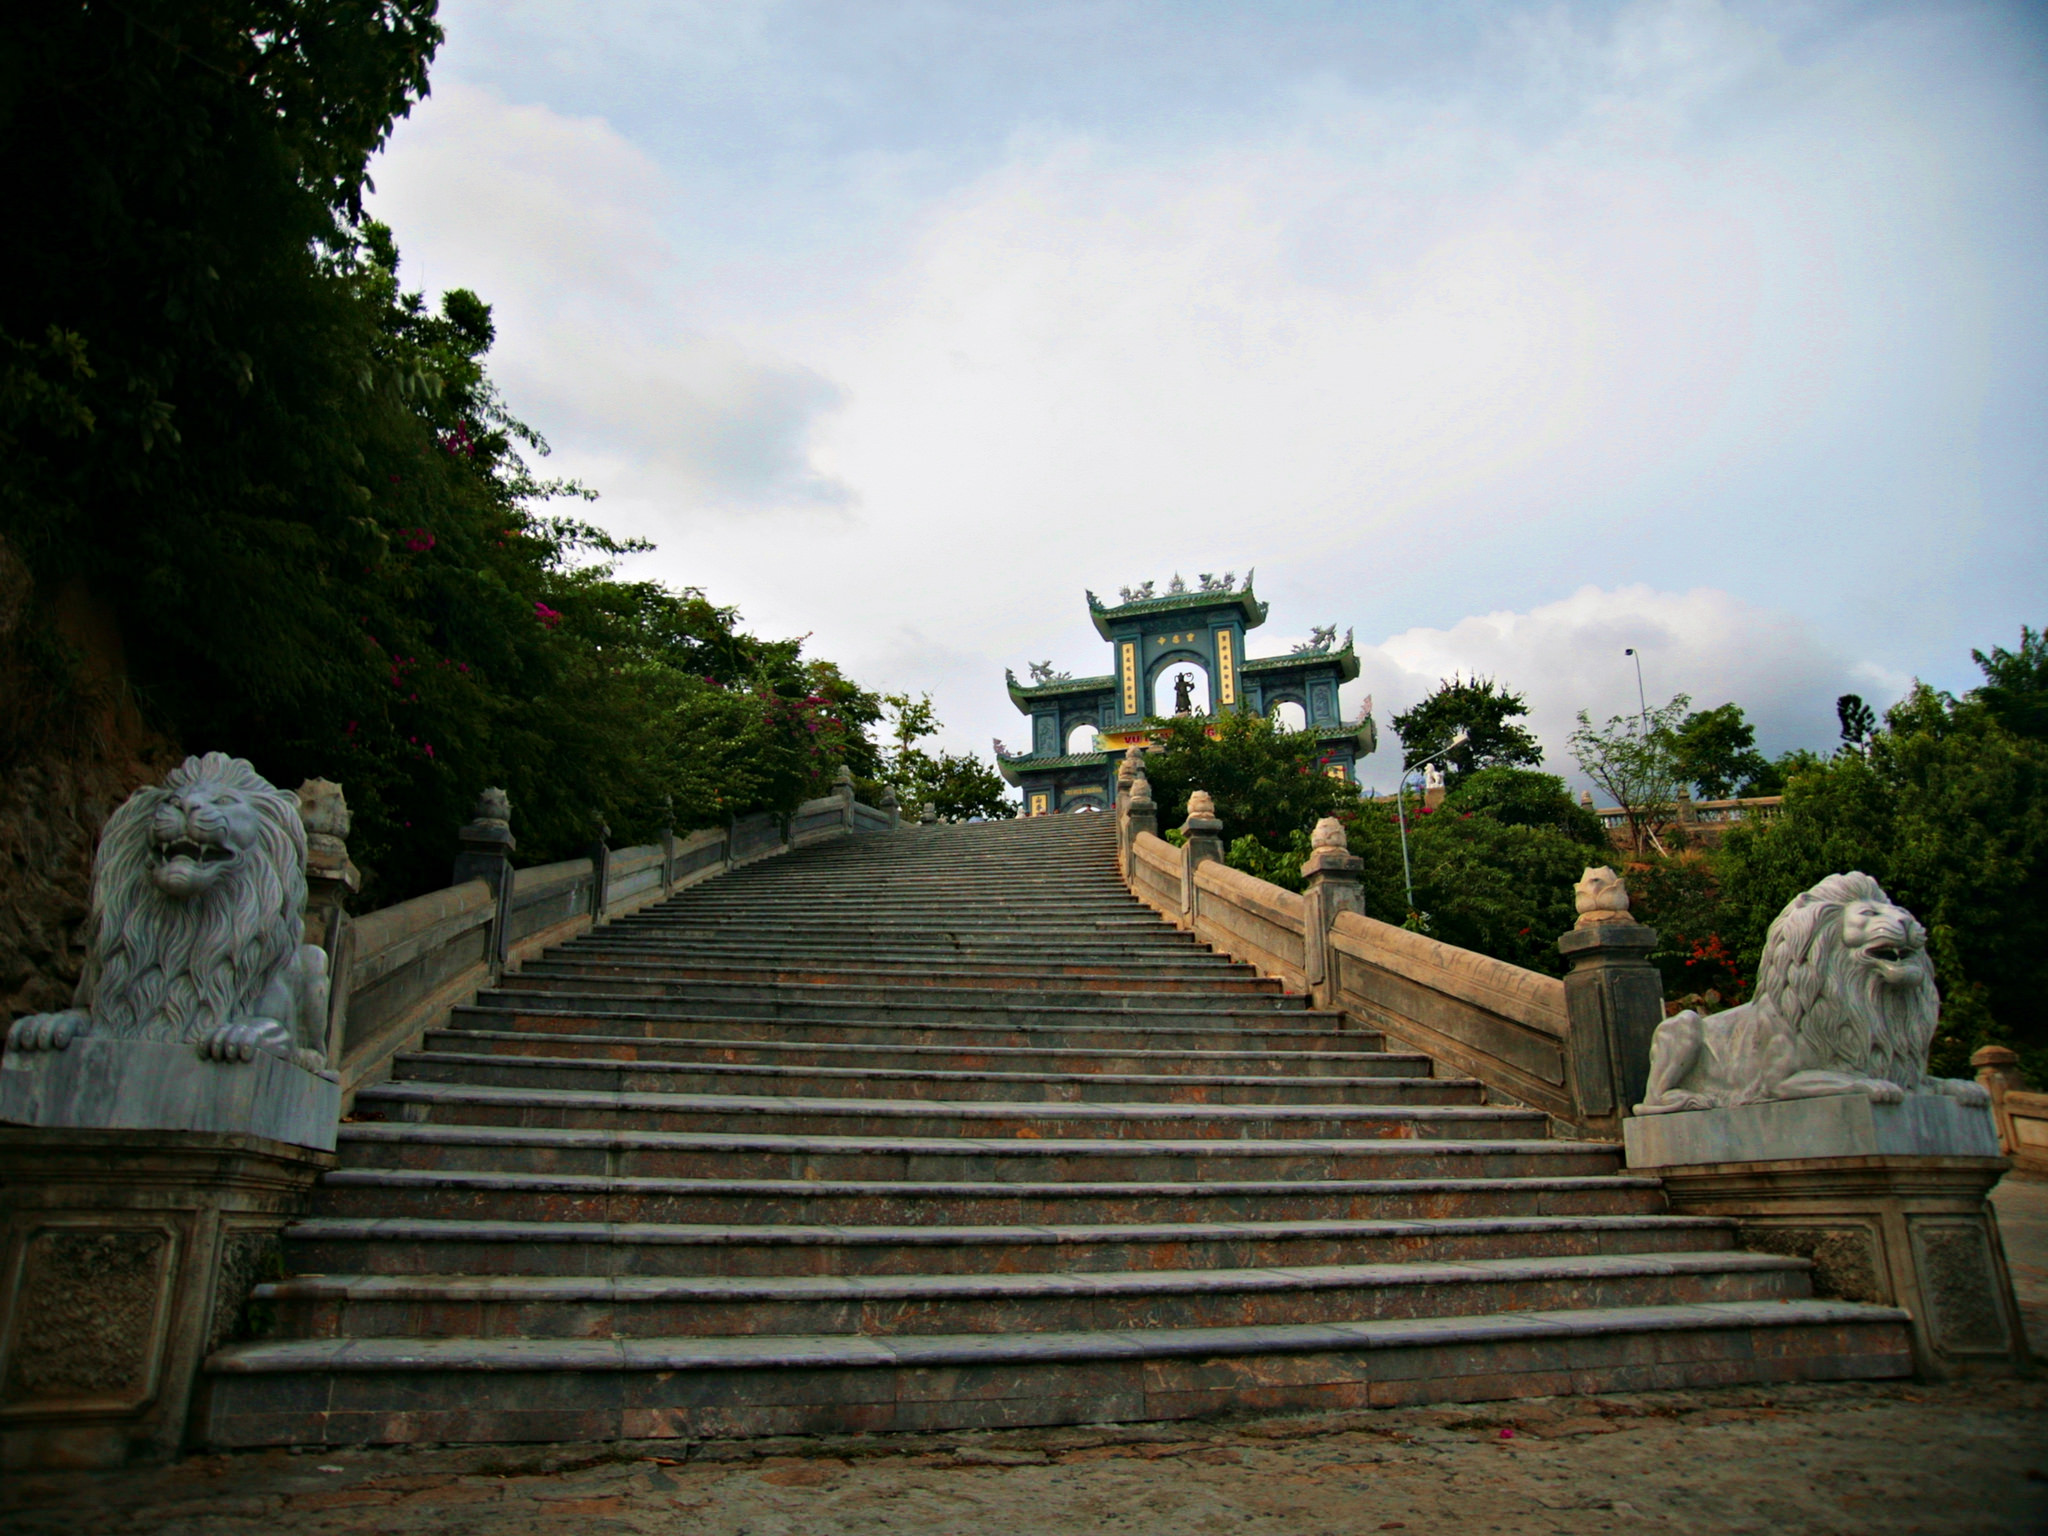 stairs up to gateway at Linh Ung Pagoda, Vietnam